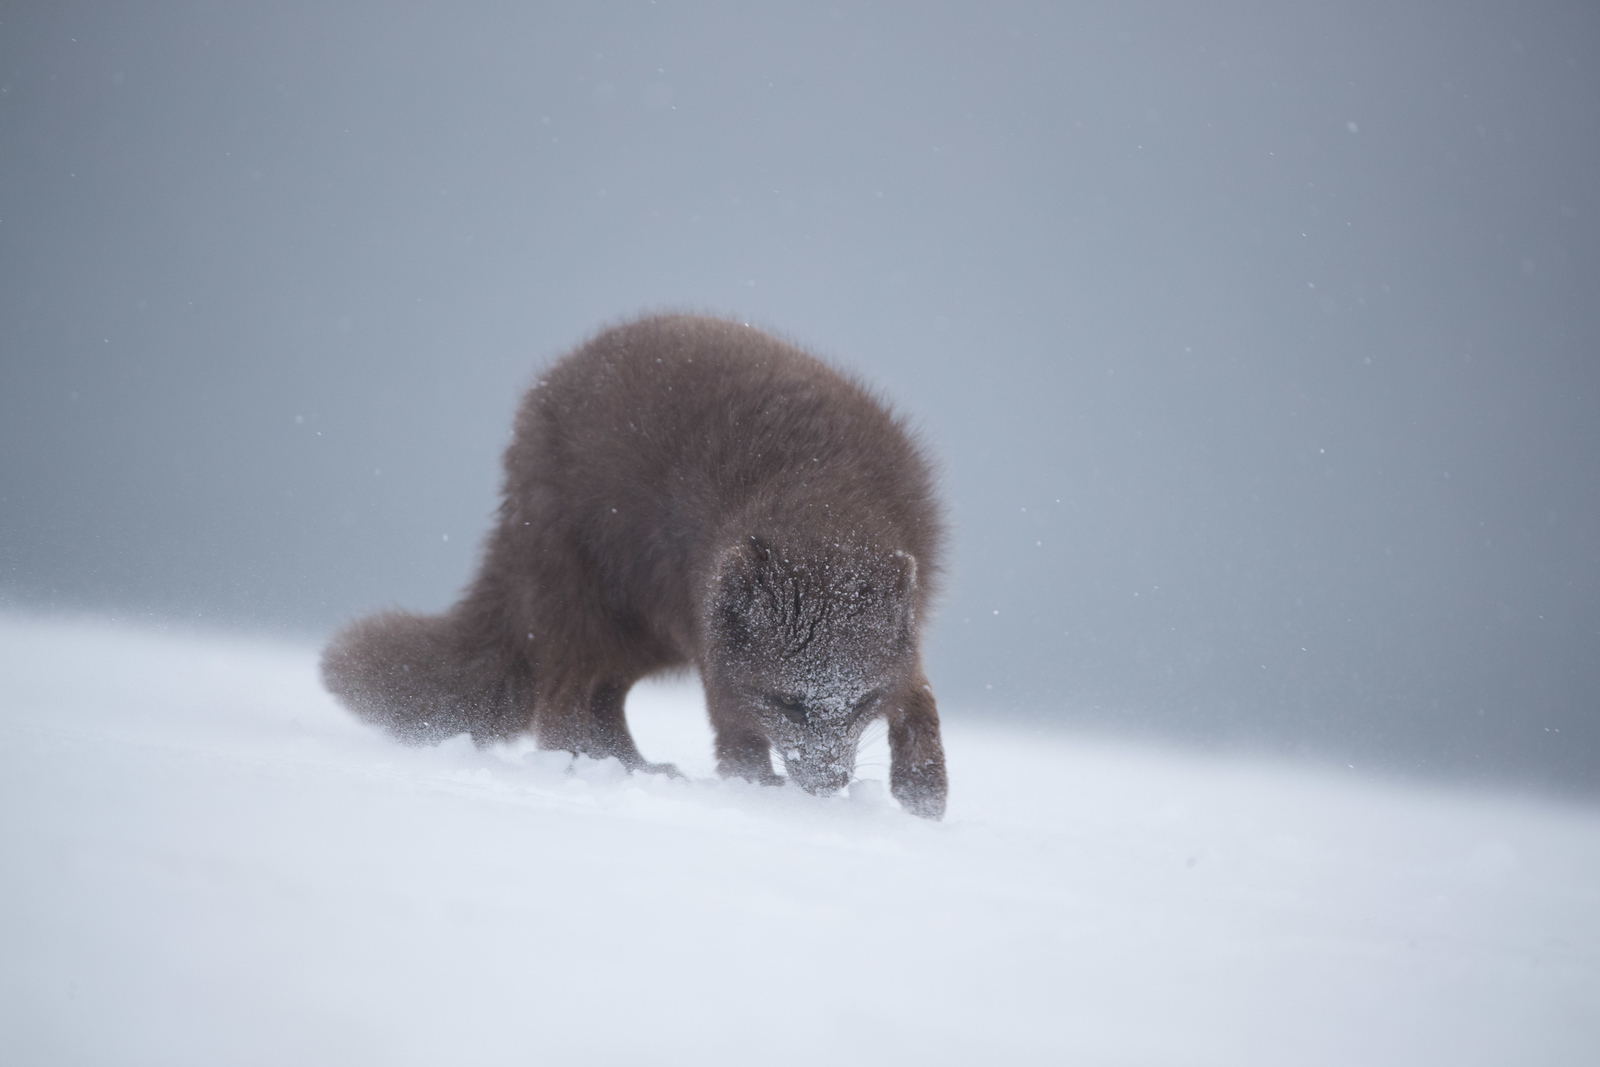 Finding a meal can mean digging trhrough the snow in pursuit of something that smells interesting